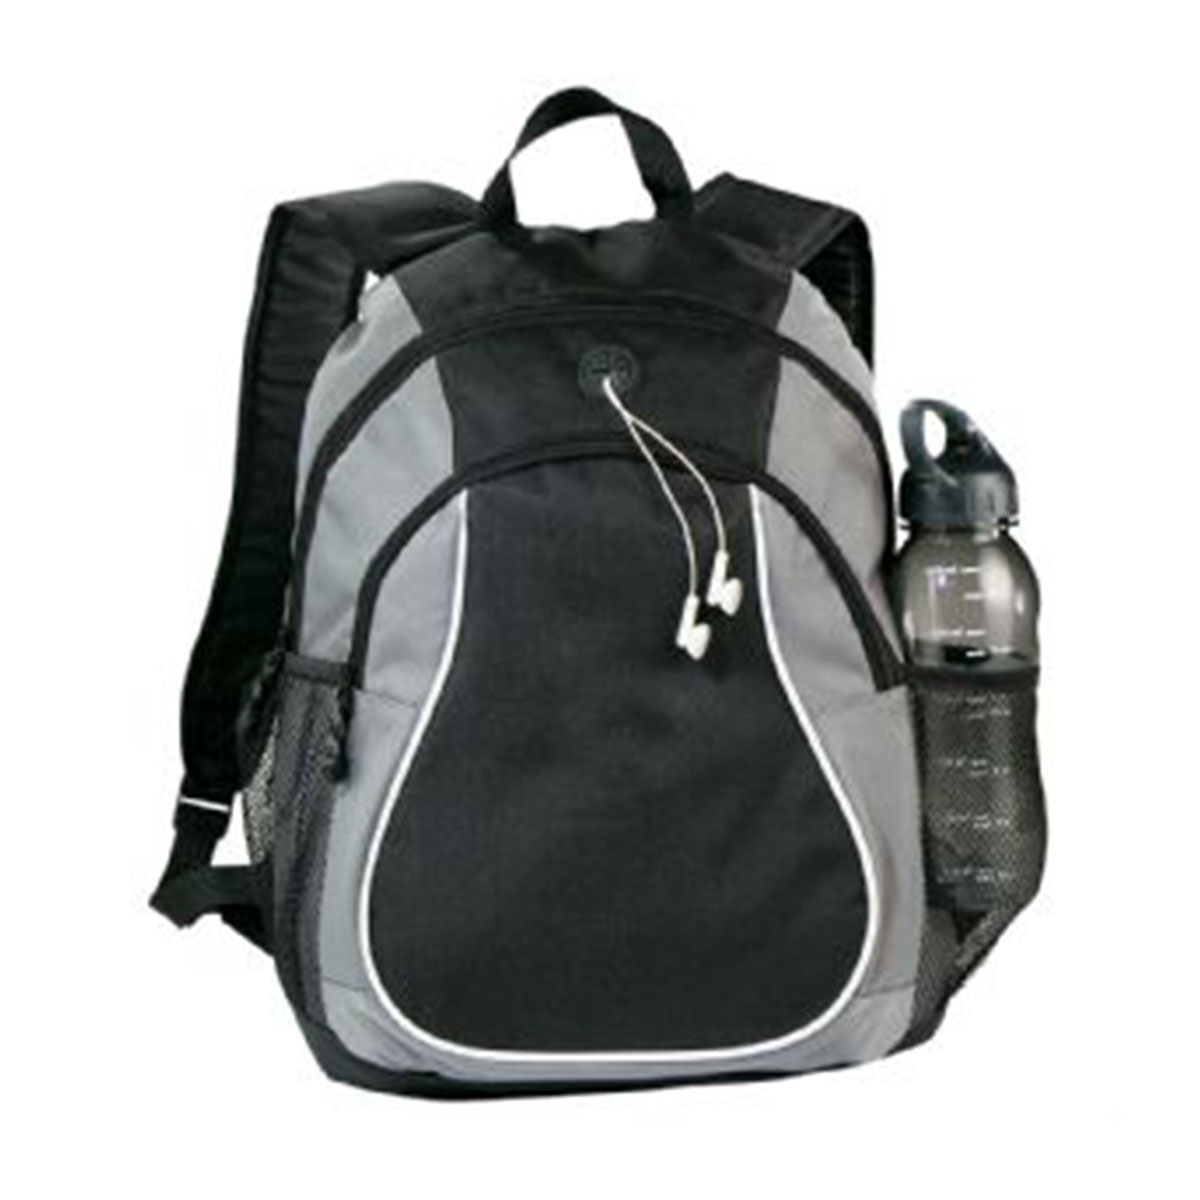 Coil Backpack-Grey and Black with White Trim.